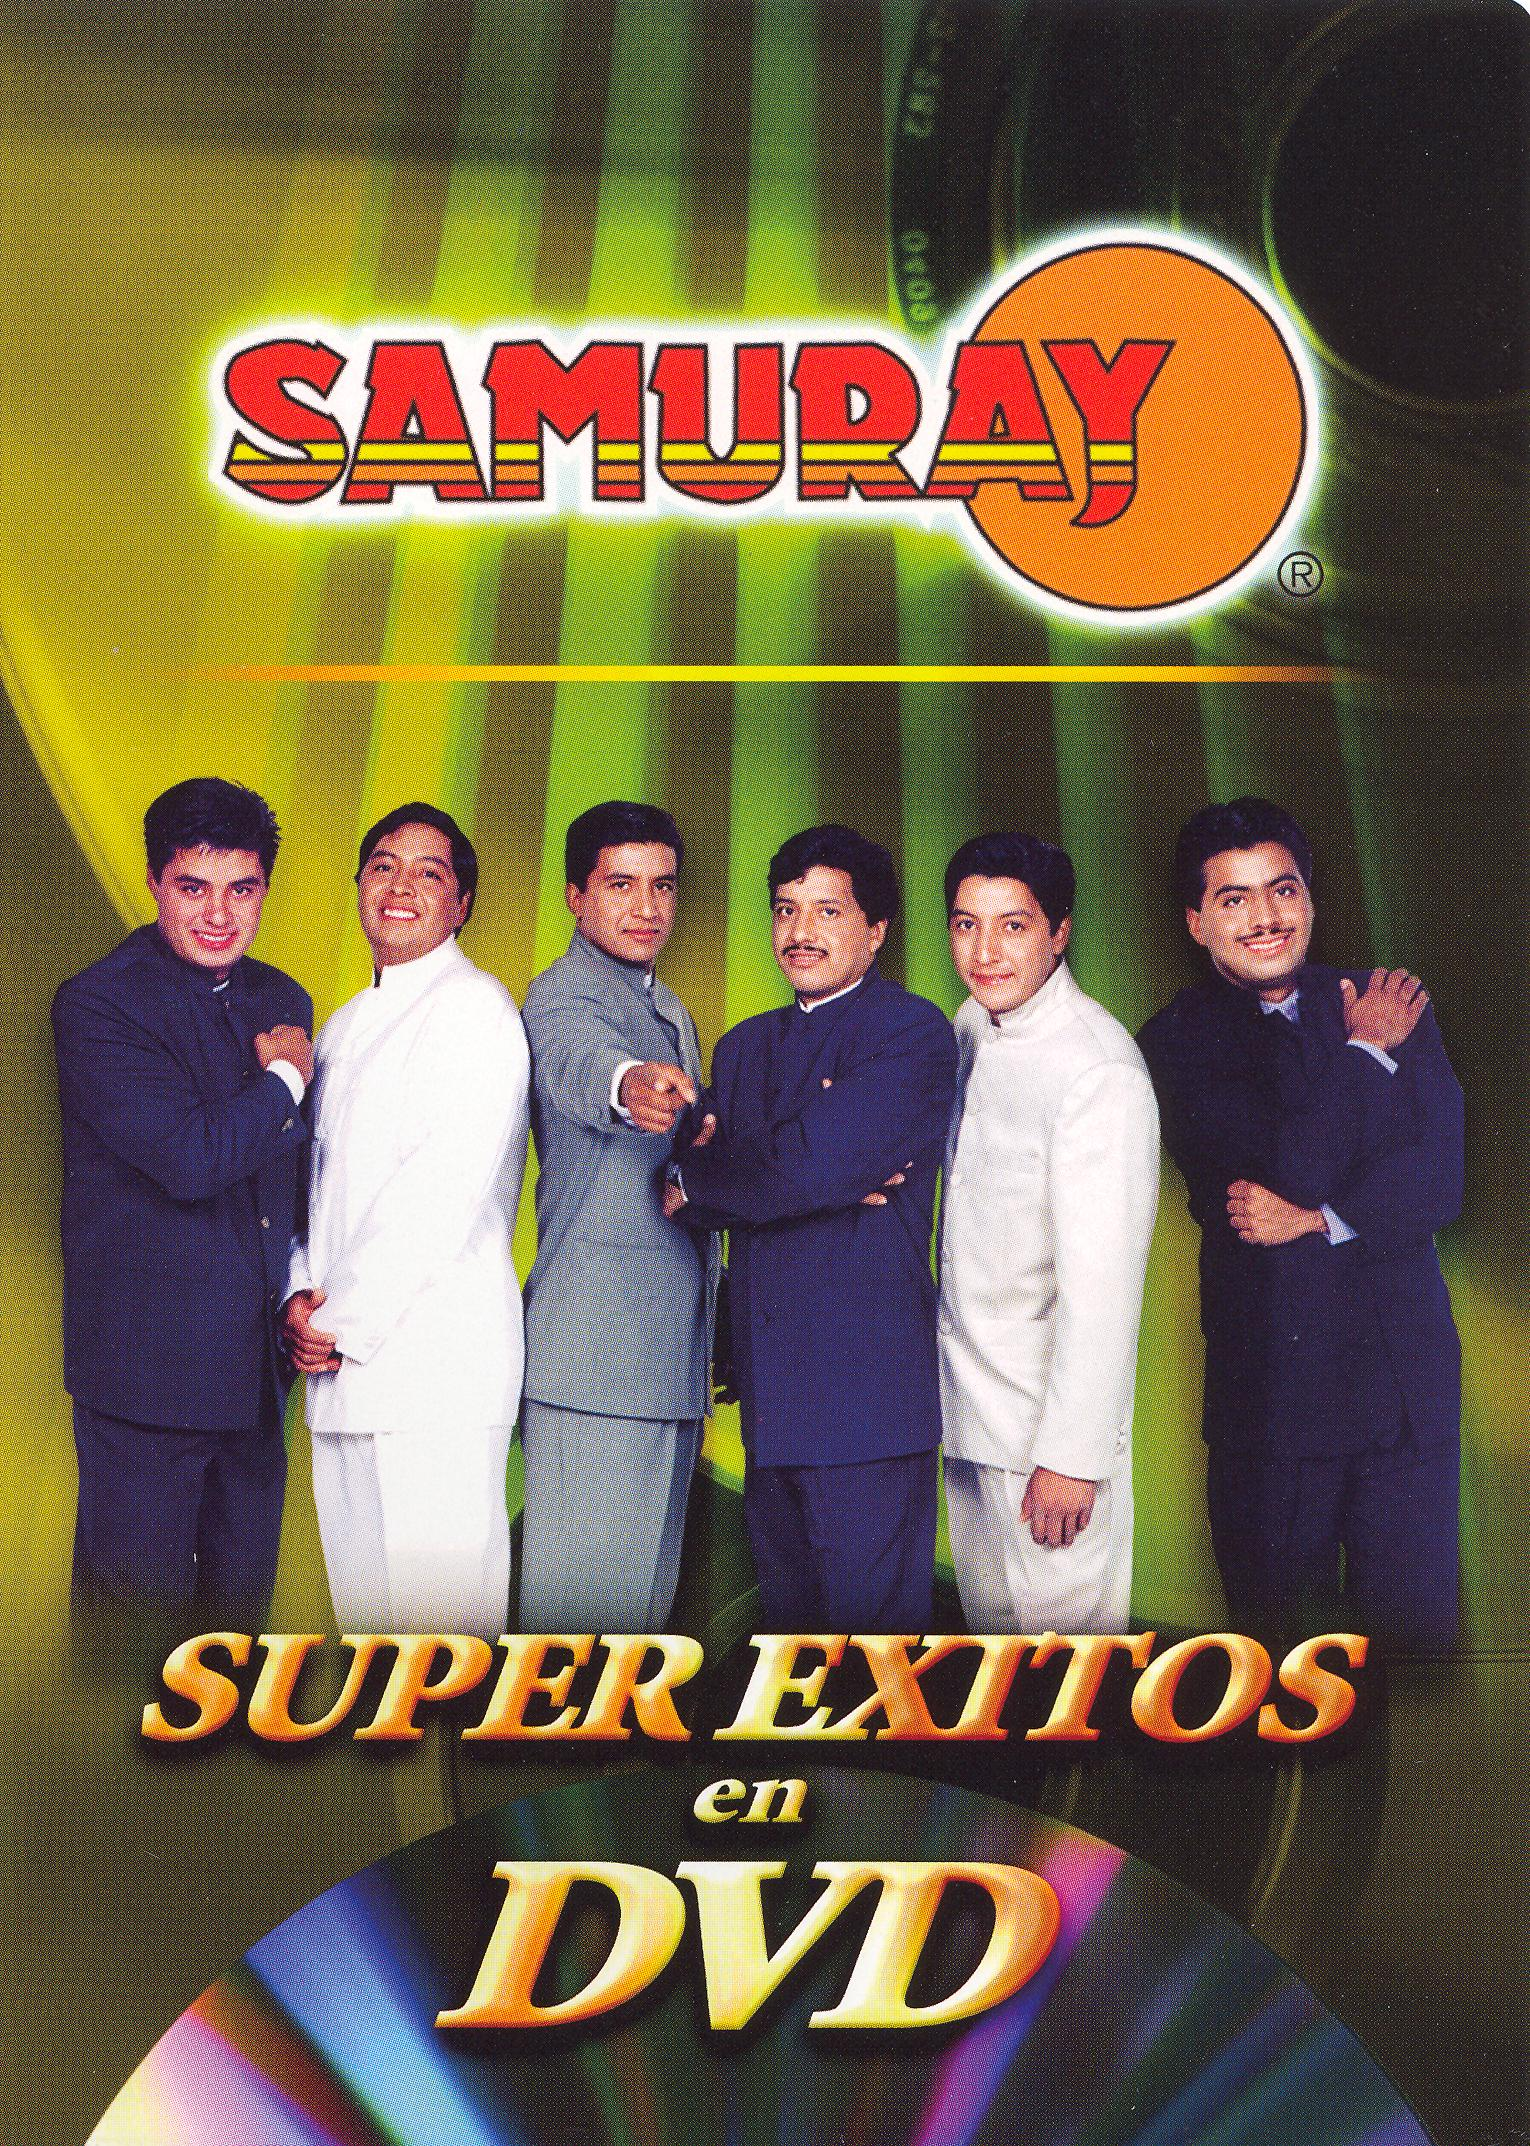 Super Exitos en DVD: Samuray